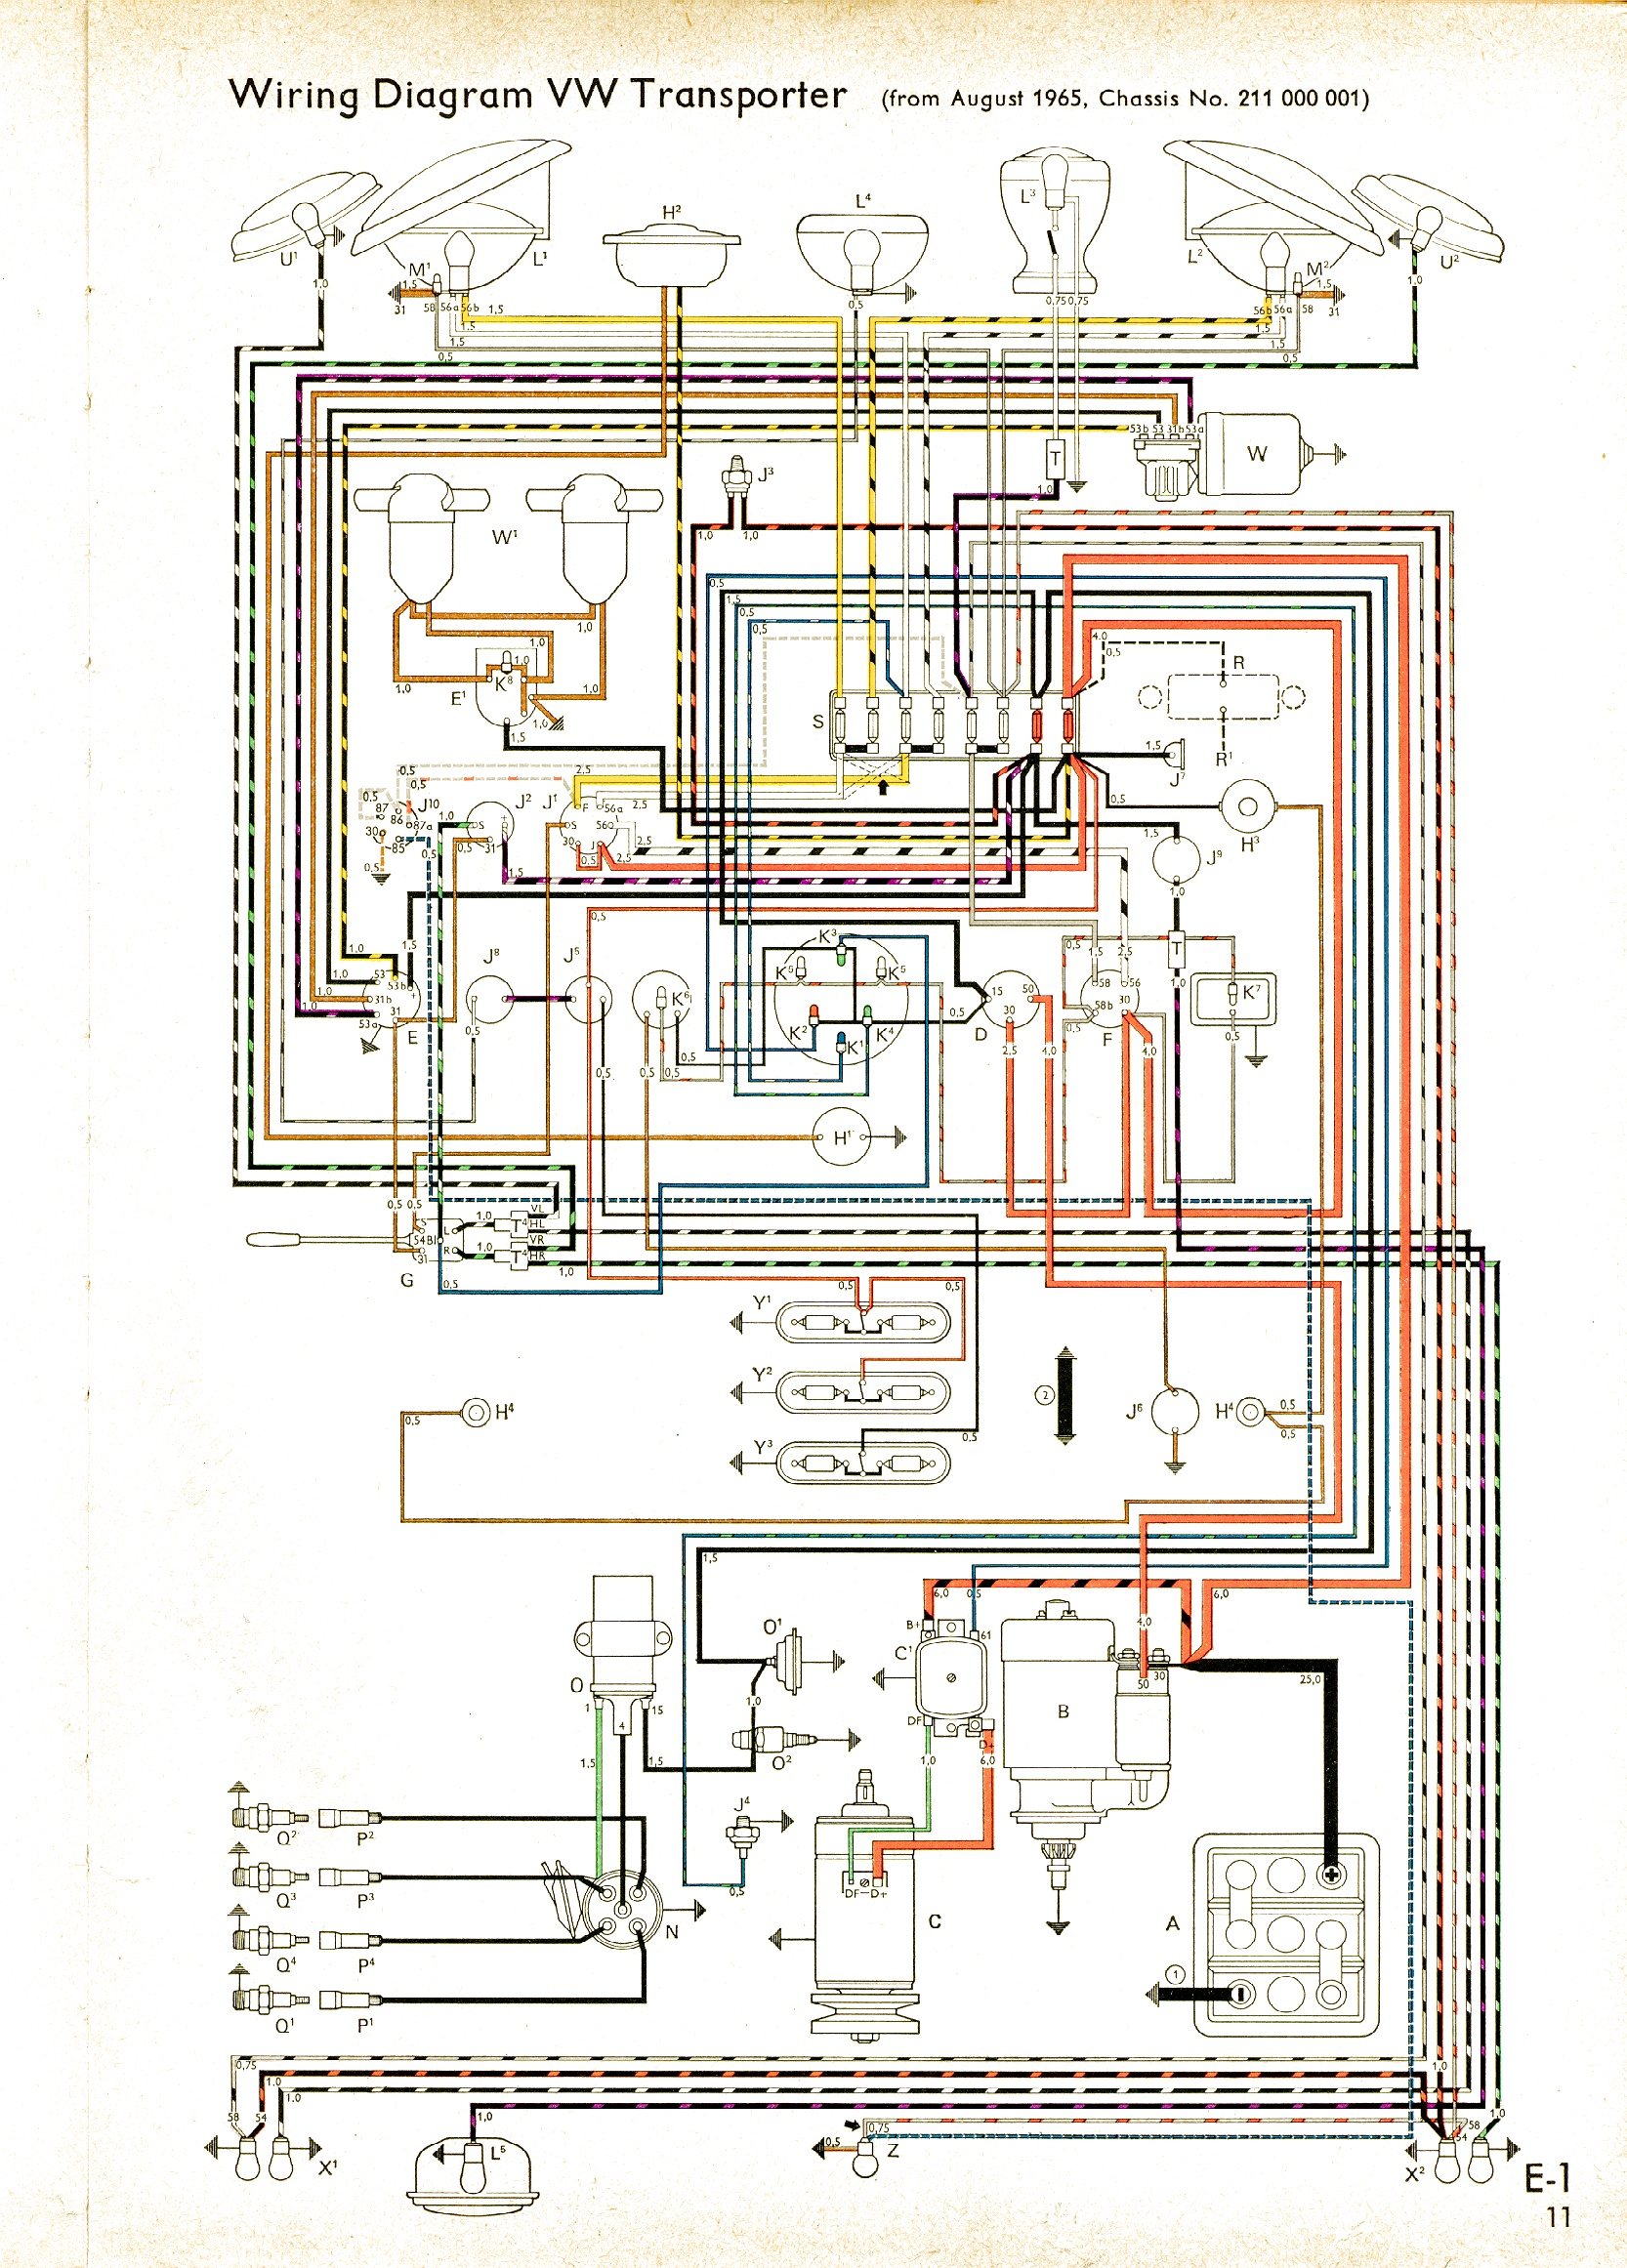 bus 65 vw wiring diagrams 1973 vw beetle wiring diagram at virtualis.co